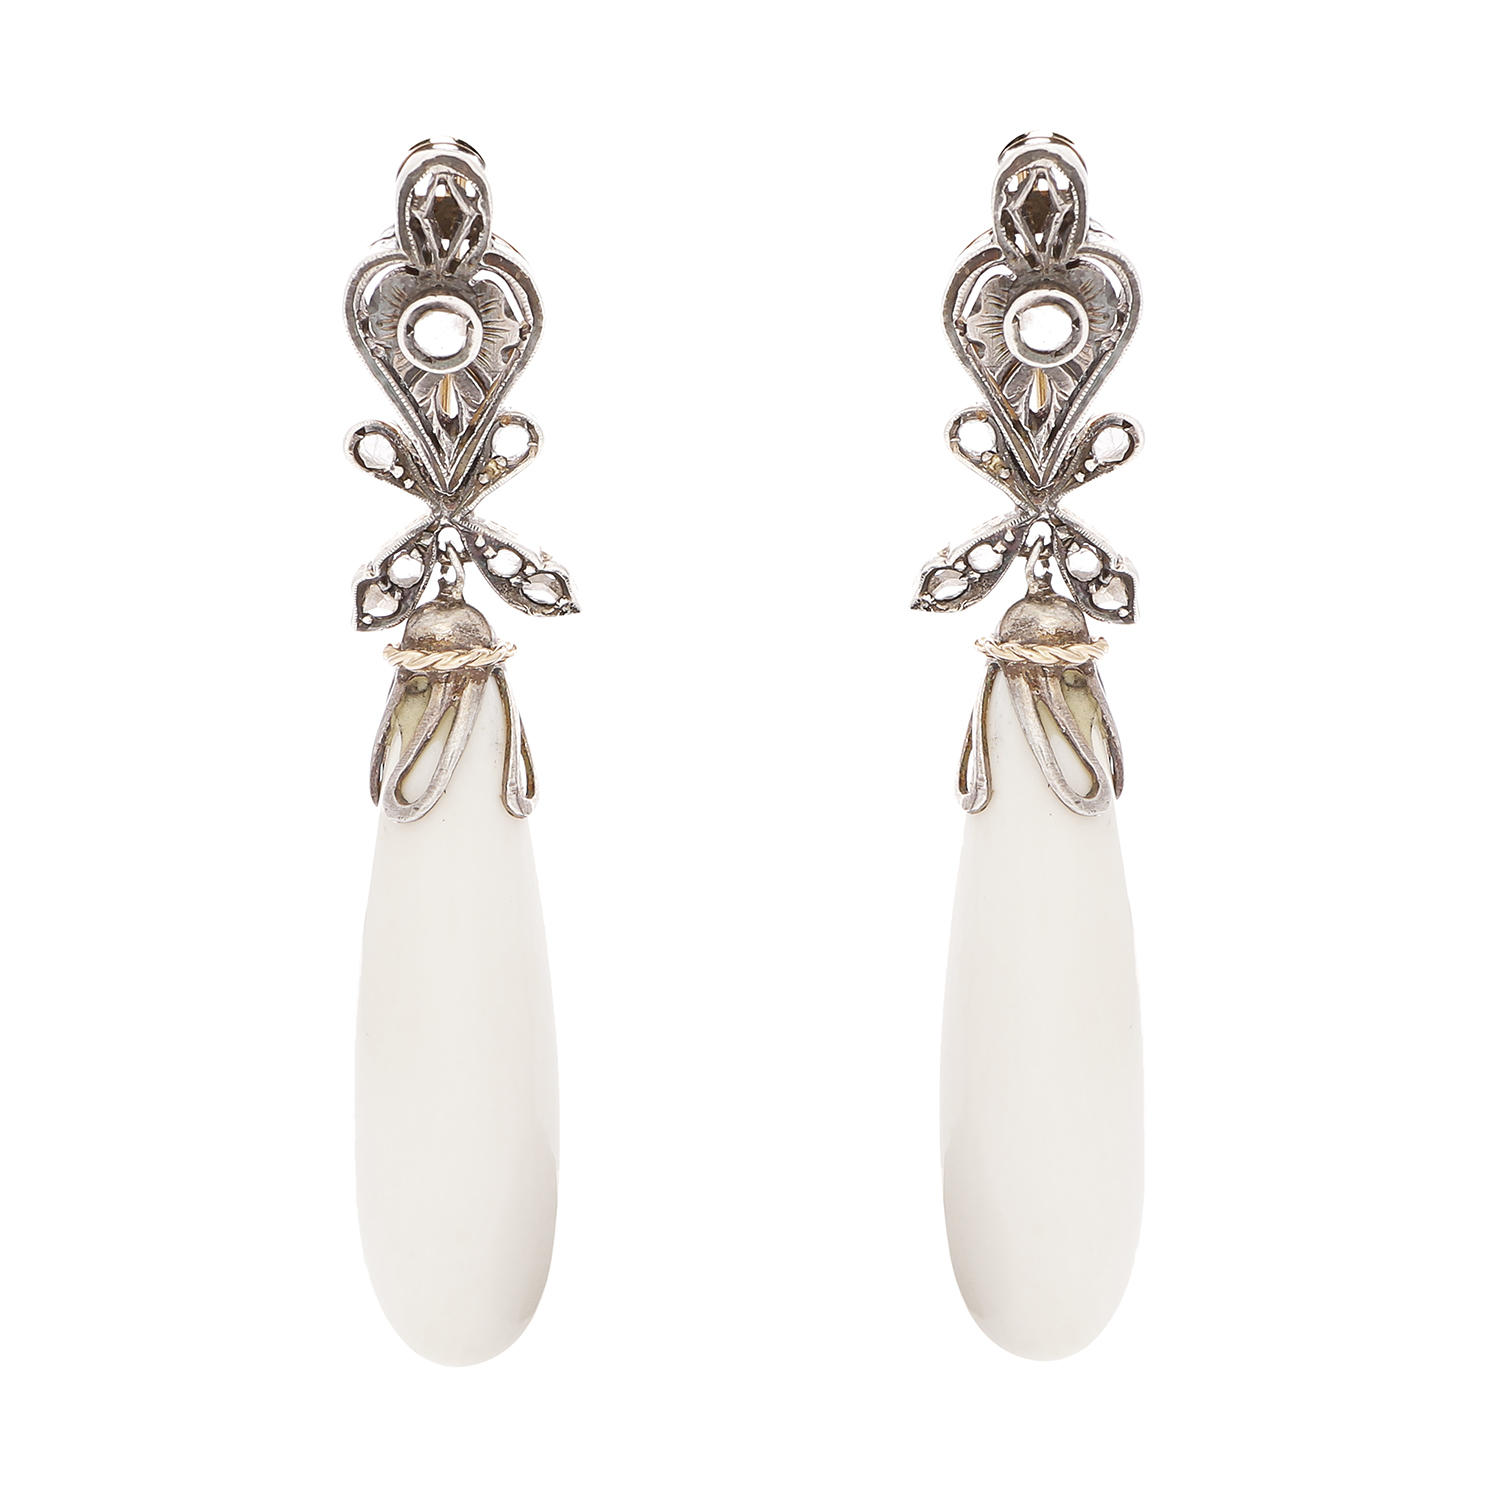 A PAIR OF ANTIQUE WHITE CORAL AND DIAMOND EARRINGS in yellow gold and silver, the polished white